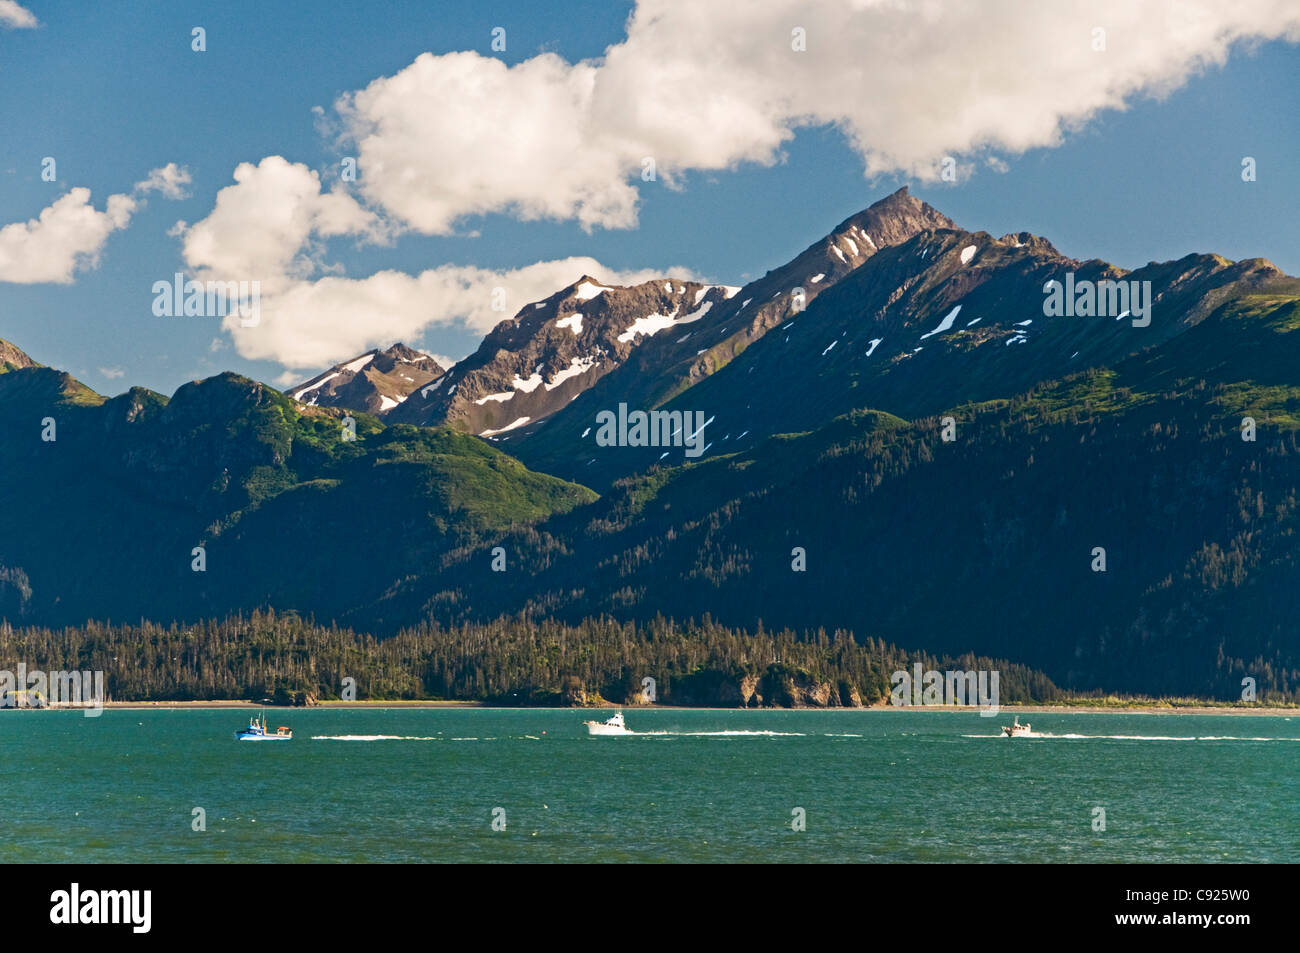 Sport fishing charter boats in Kachemak Bay with the Kenai Mountains and Sadie Peak in the background, Alaska - Stock Image